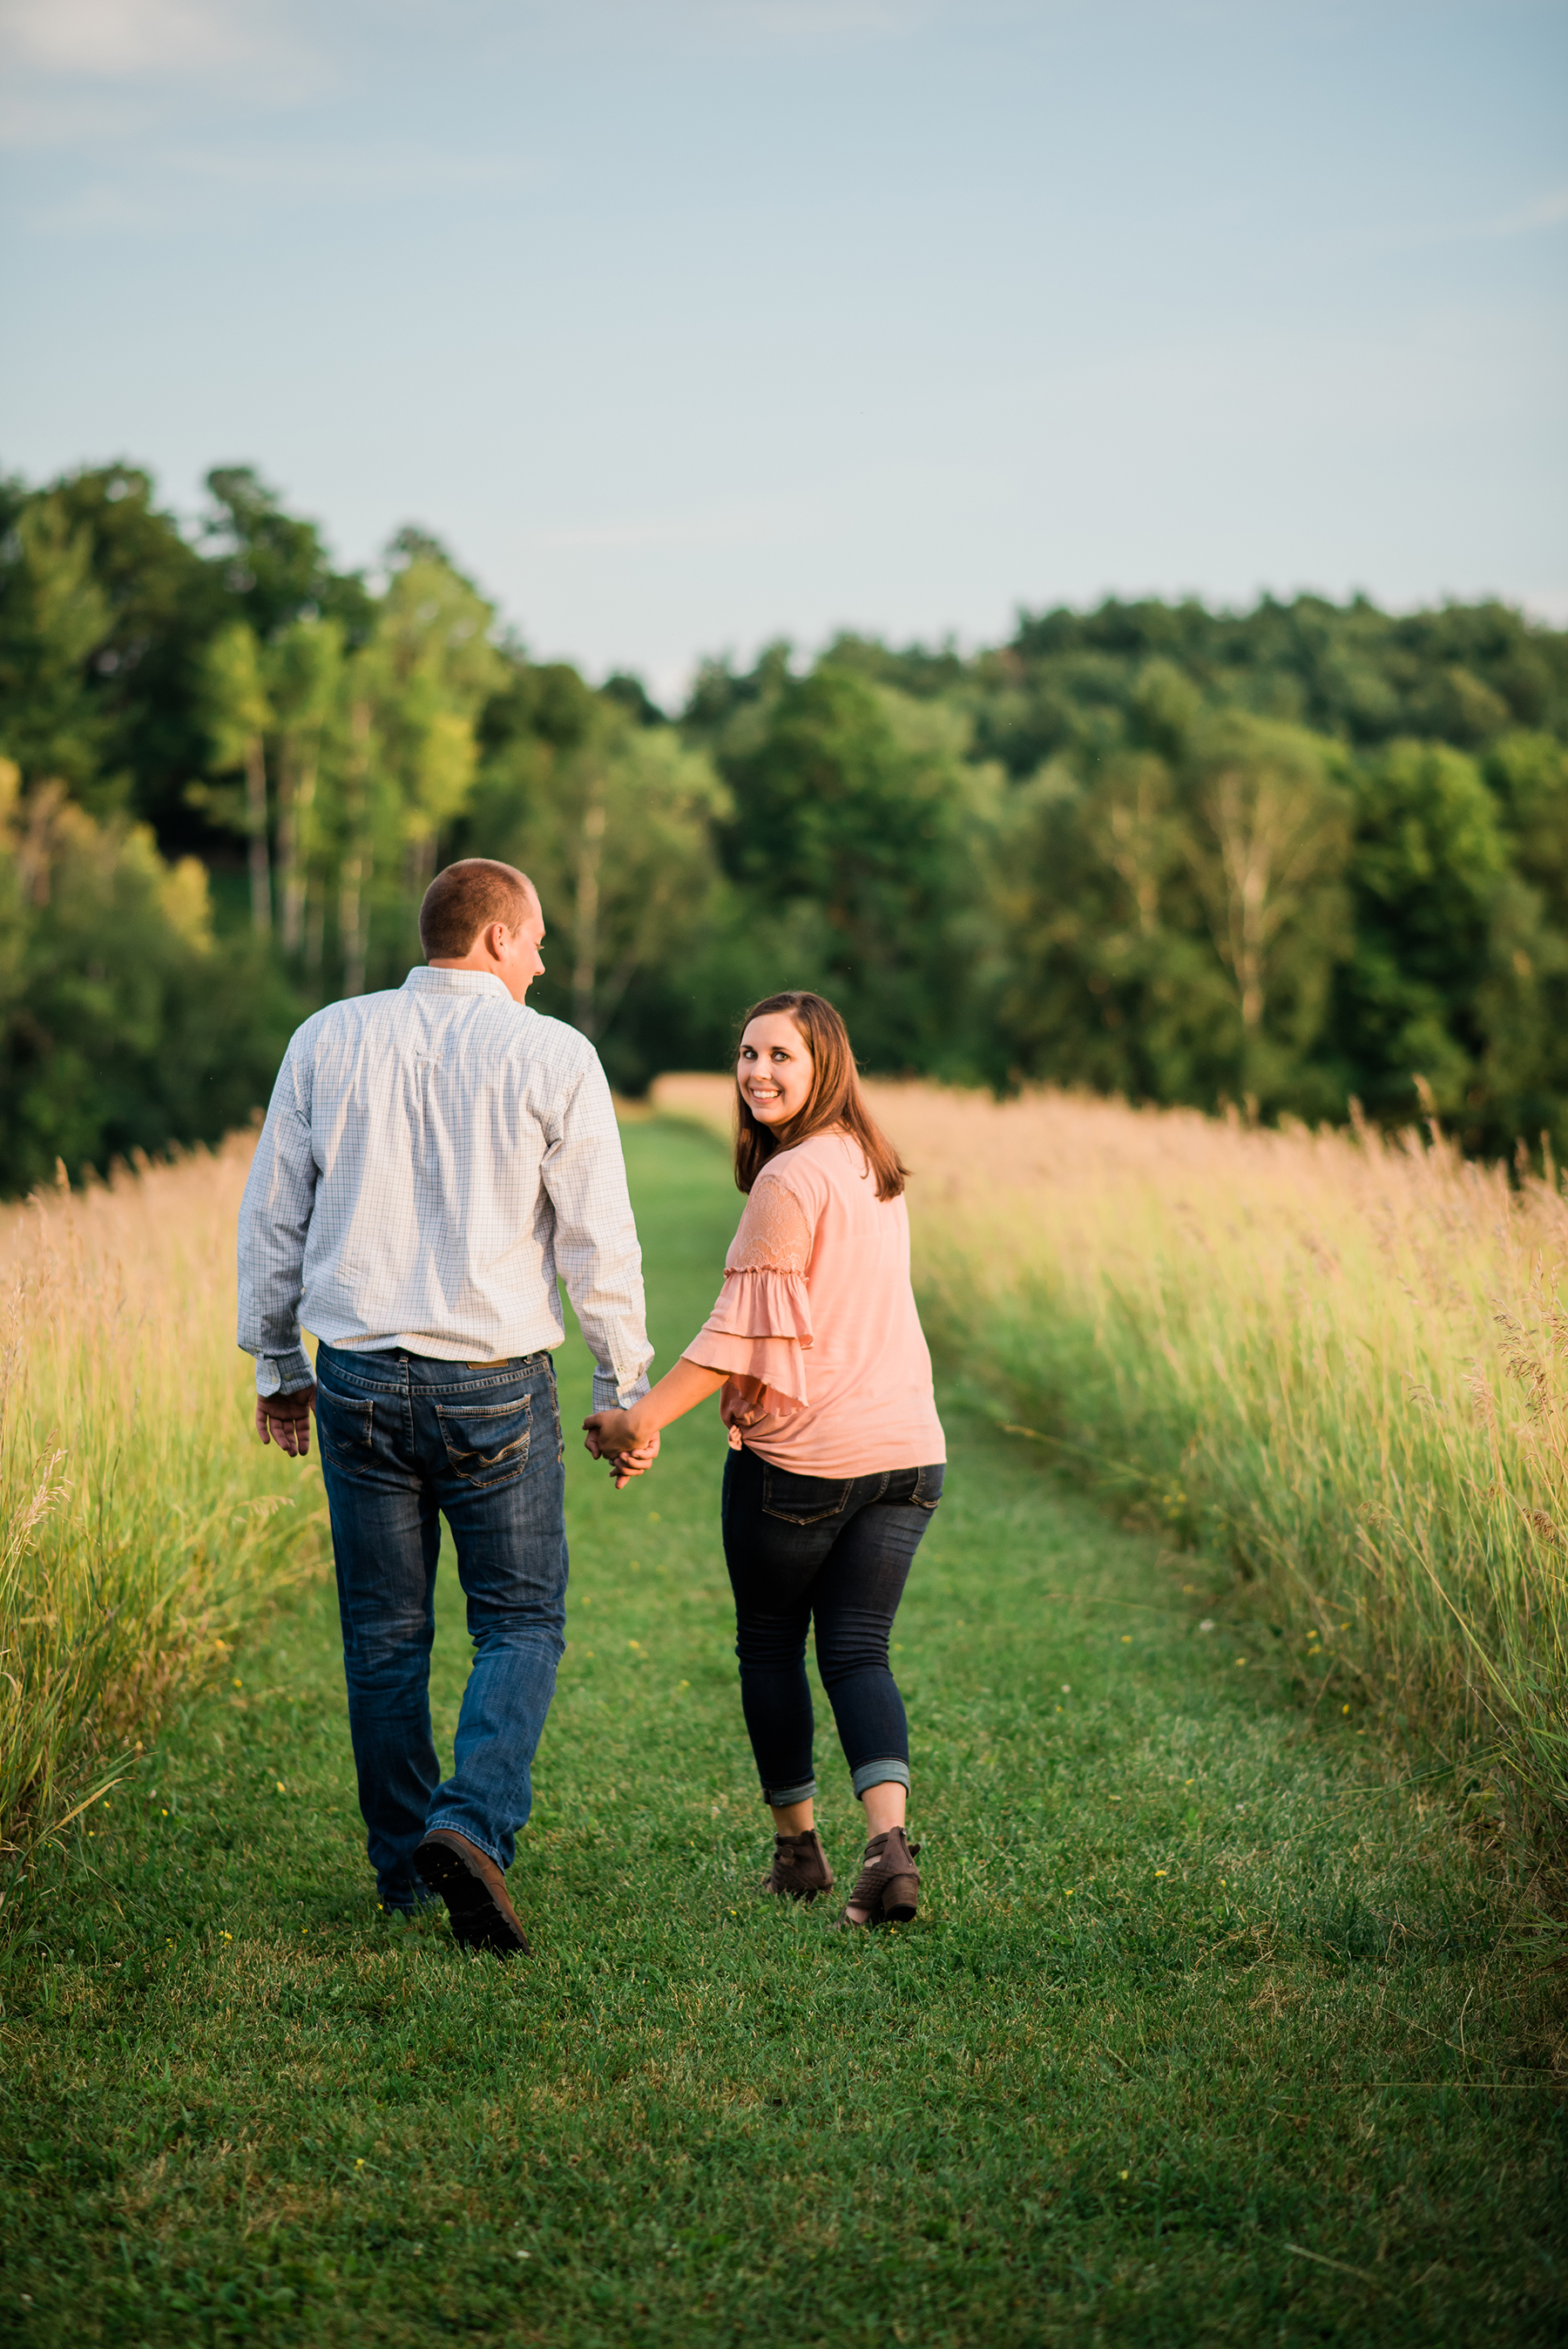 Farmstead Wisconsin Engagement Session Ruxin John Photography12